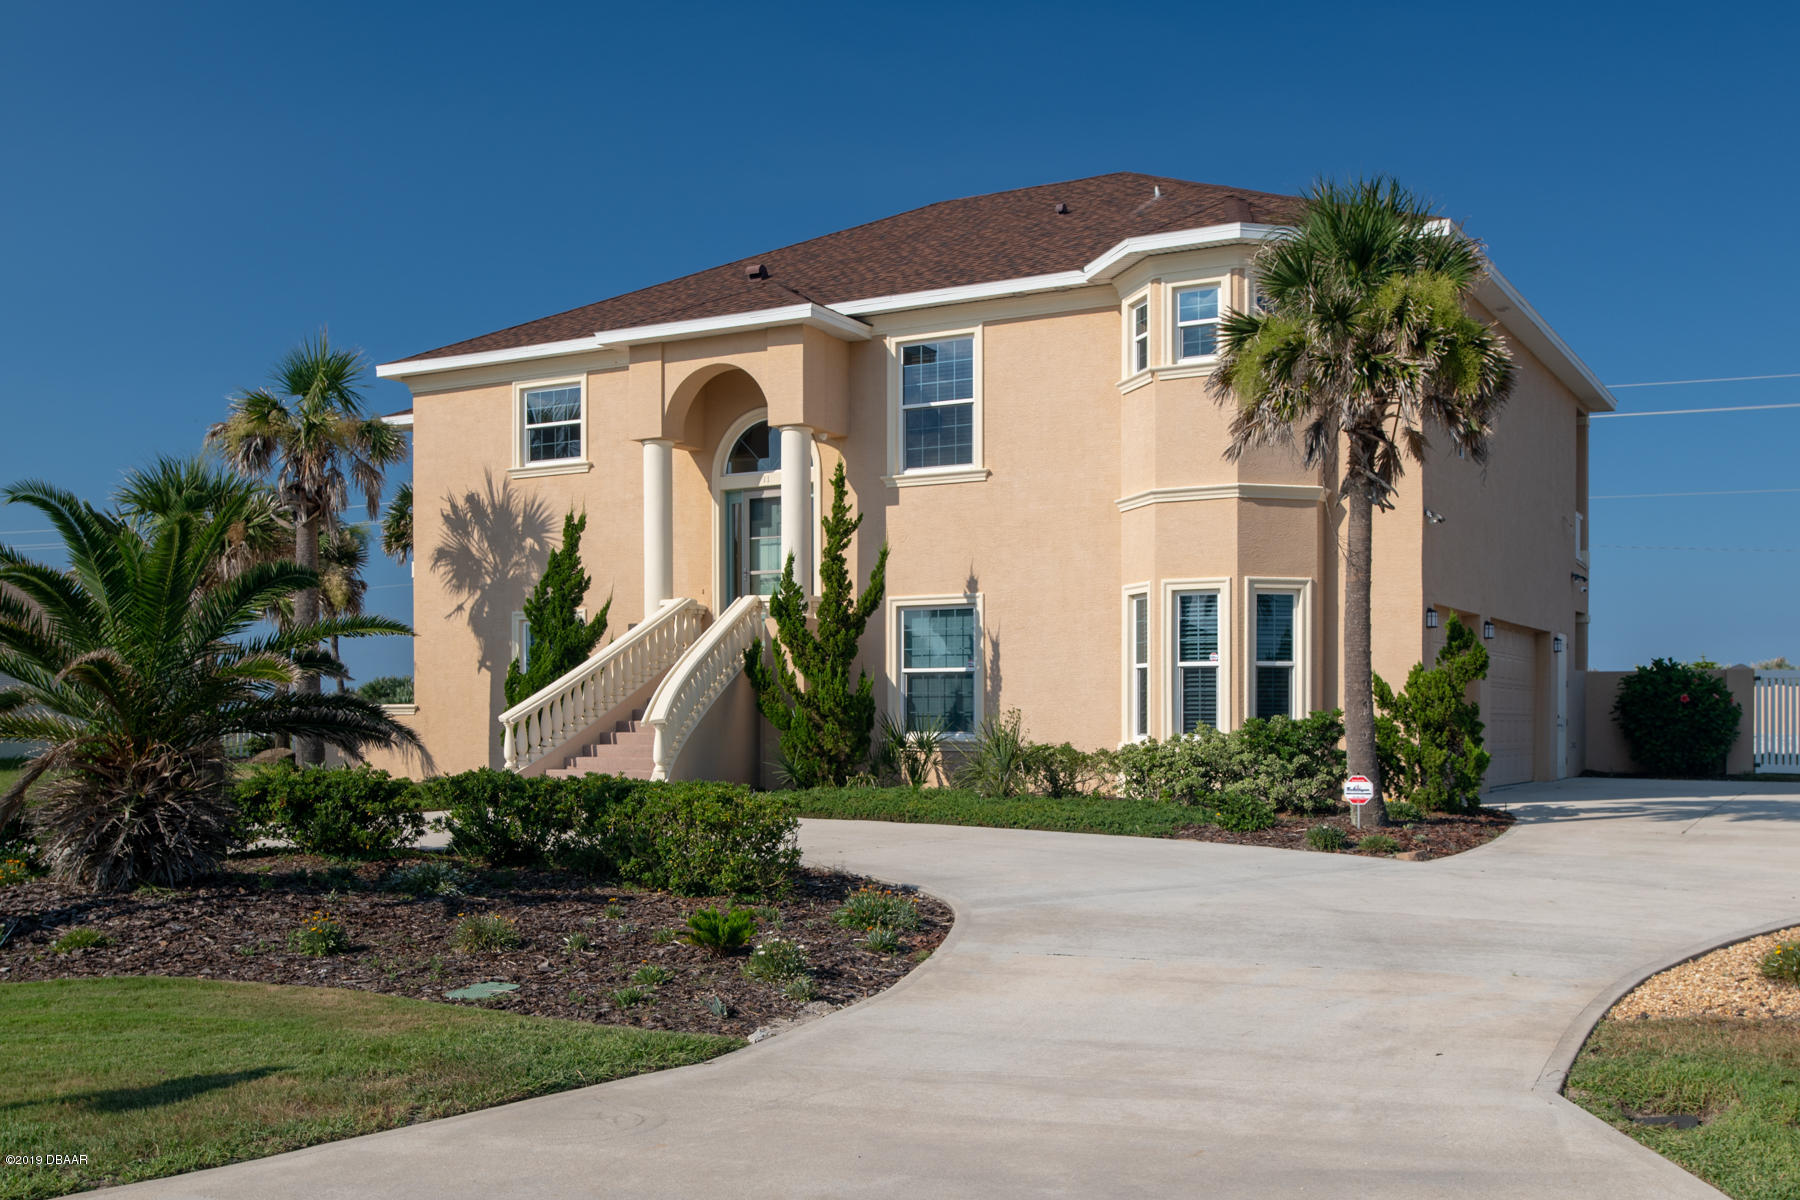 11  Sea Drift Terrace, Ormond-By-The-Sea, Florida